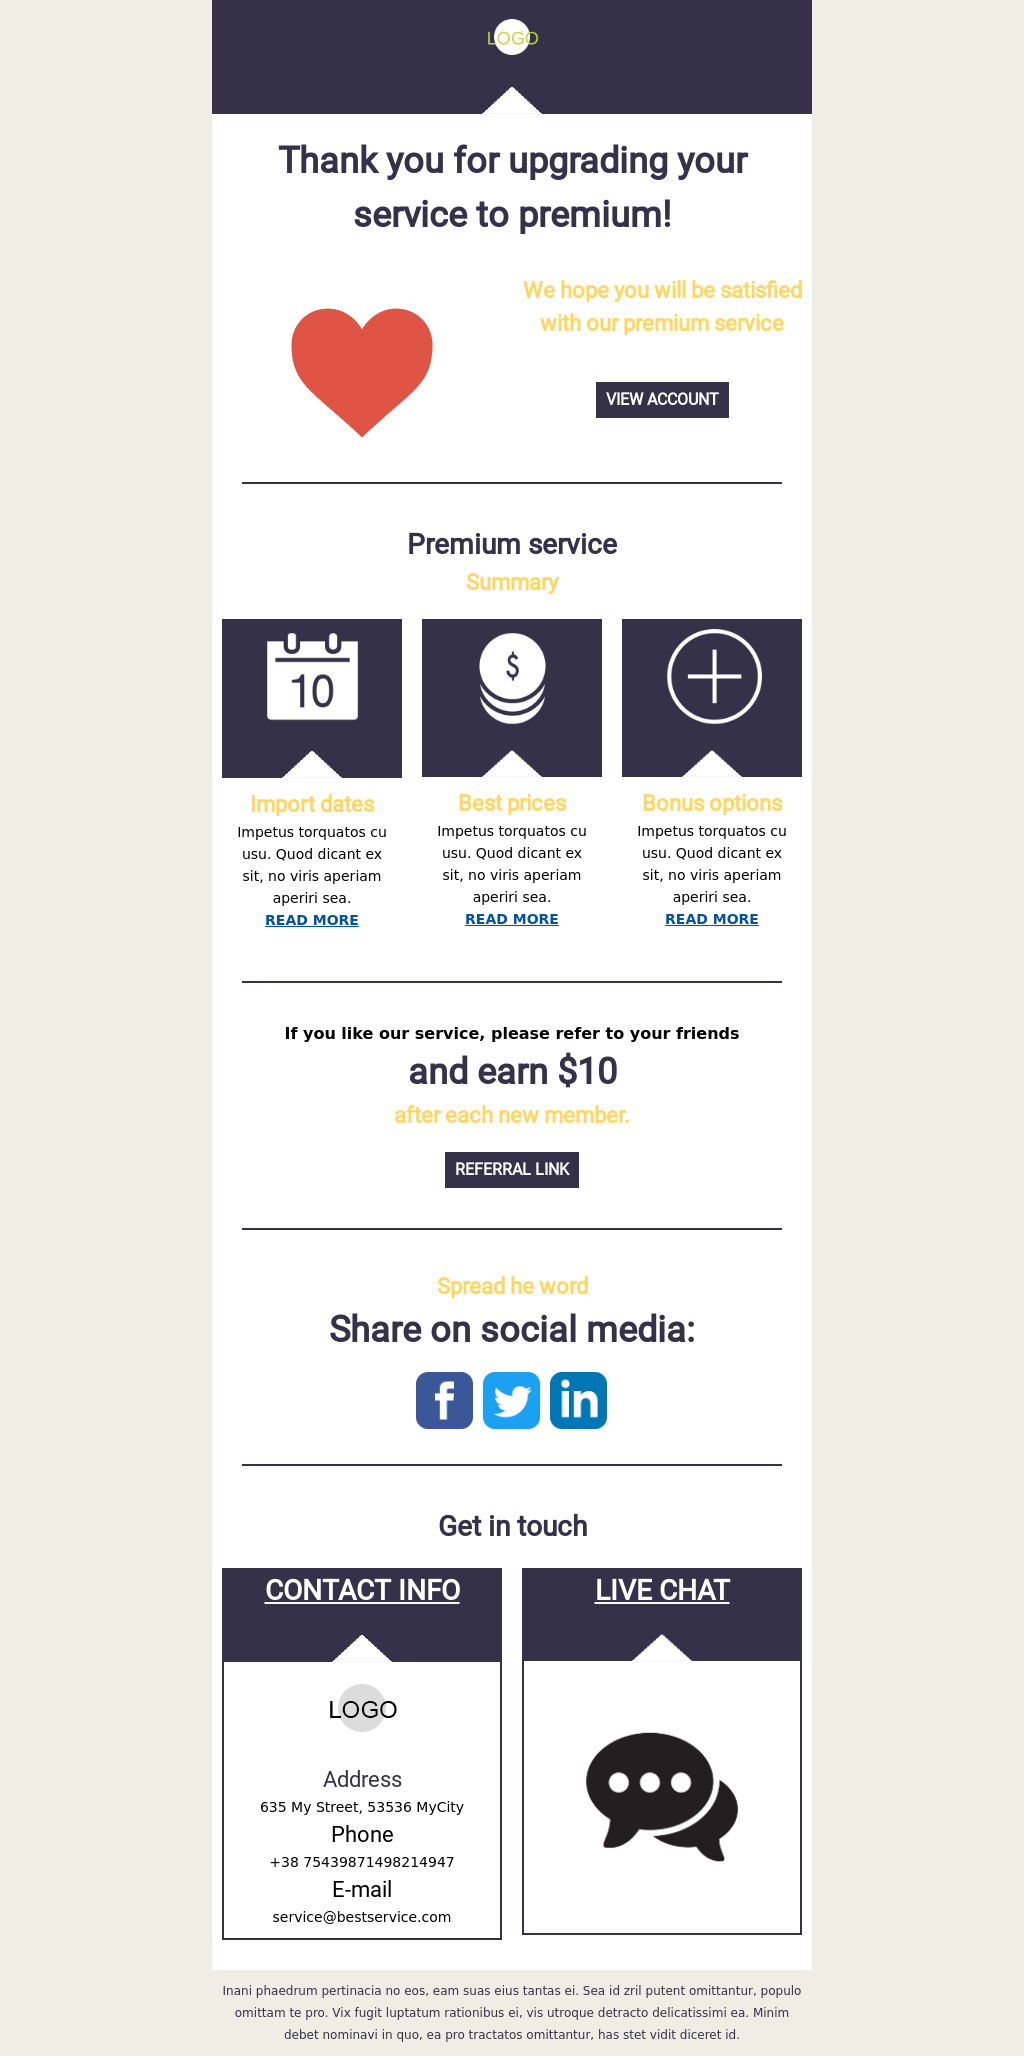 Thank you template suitable for Saas companies